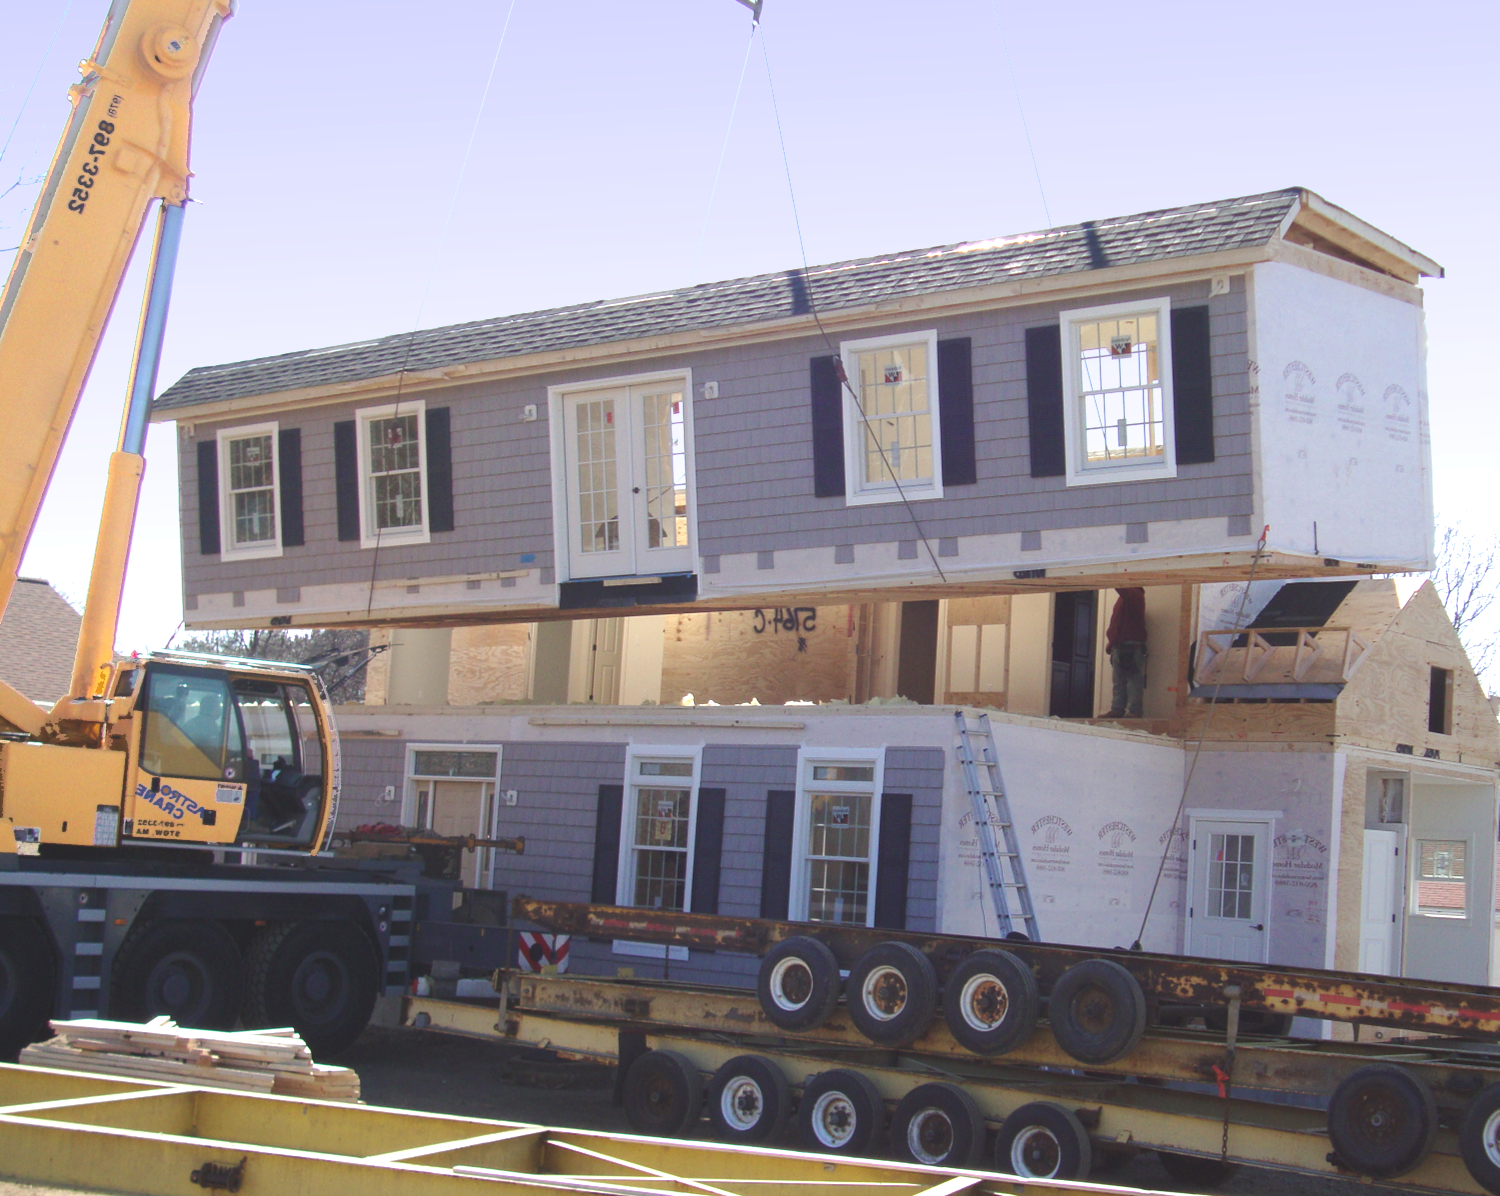 Modular Homes assembled like building blocks with crane assistance